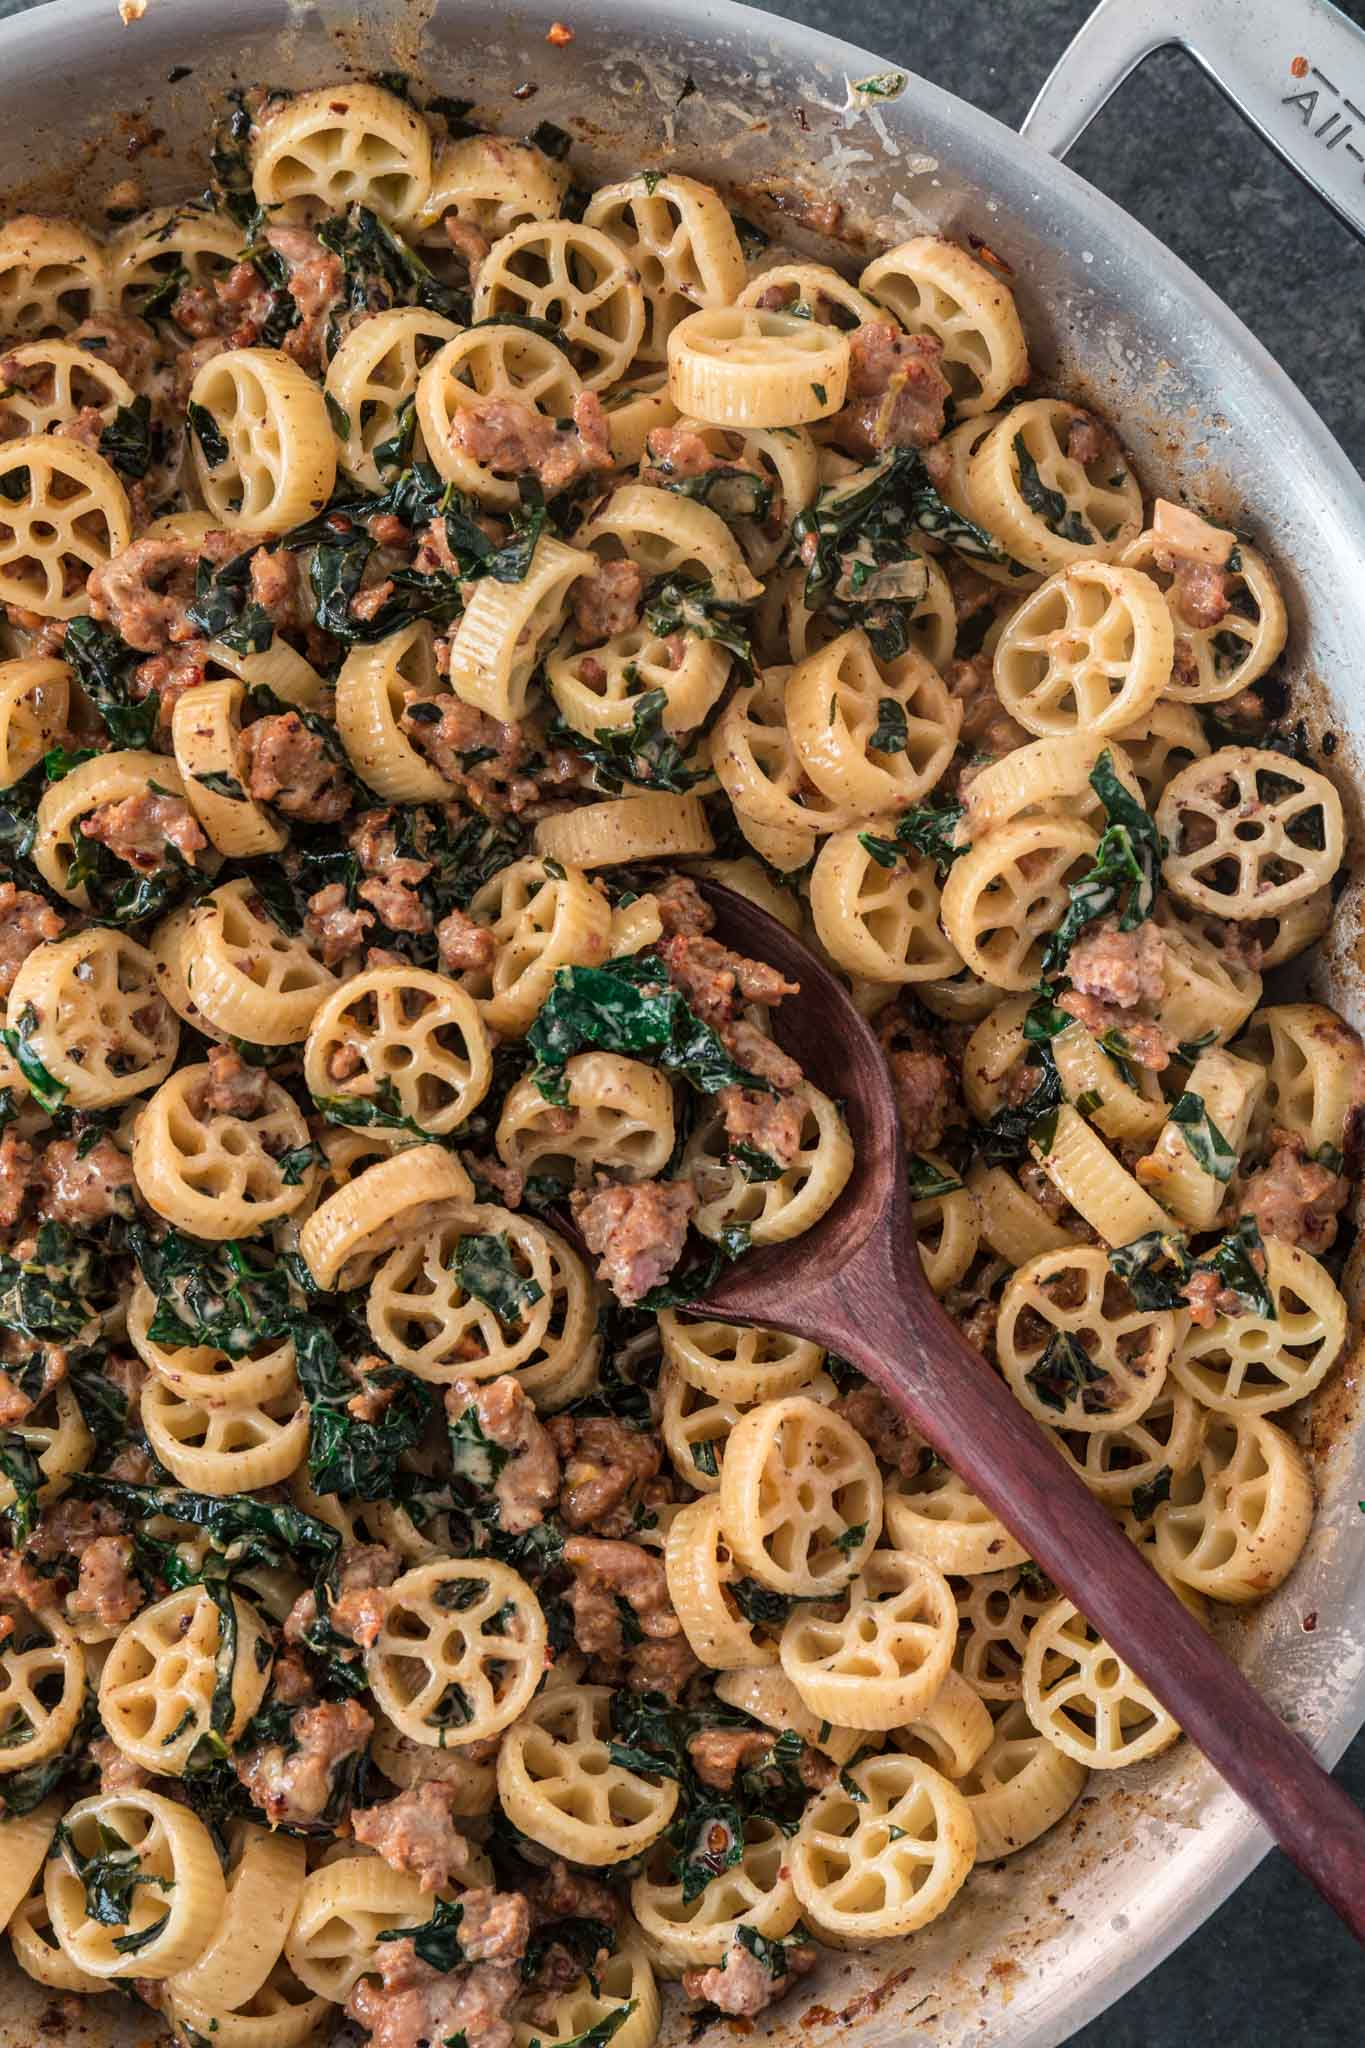 Creamy Sausage Kale Pasta | www.oliviascuisine.com | Possibly my favorite pasta dish, this Creamy Sausage Kale Pasta combines Italian sausage with rich and earthy Tuscan Kale. Tossed in the creamiest lemon parmesan sauce! And you can make it as mild or as spicy as you like! (Recipe and food photography by @oliviascuisine.)